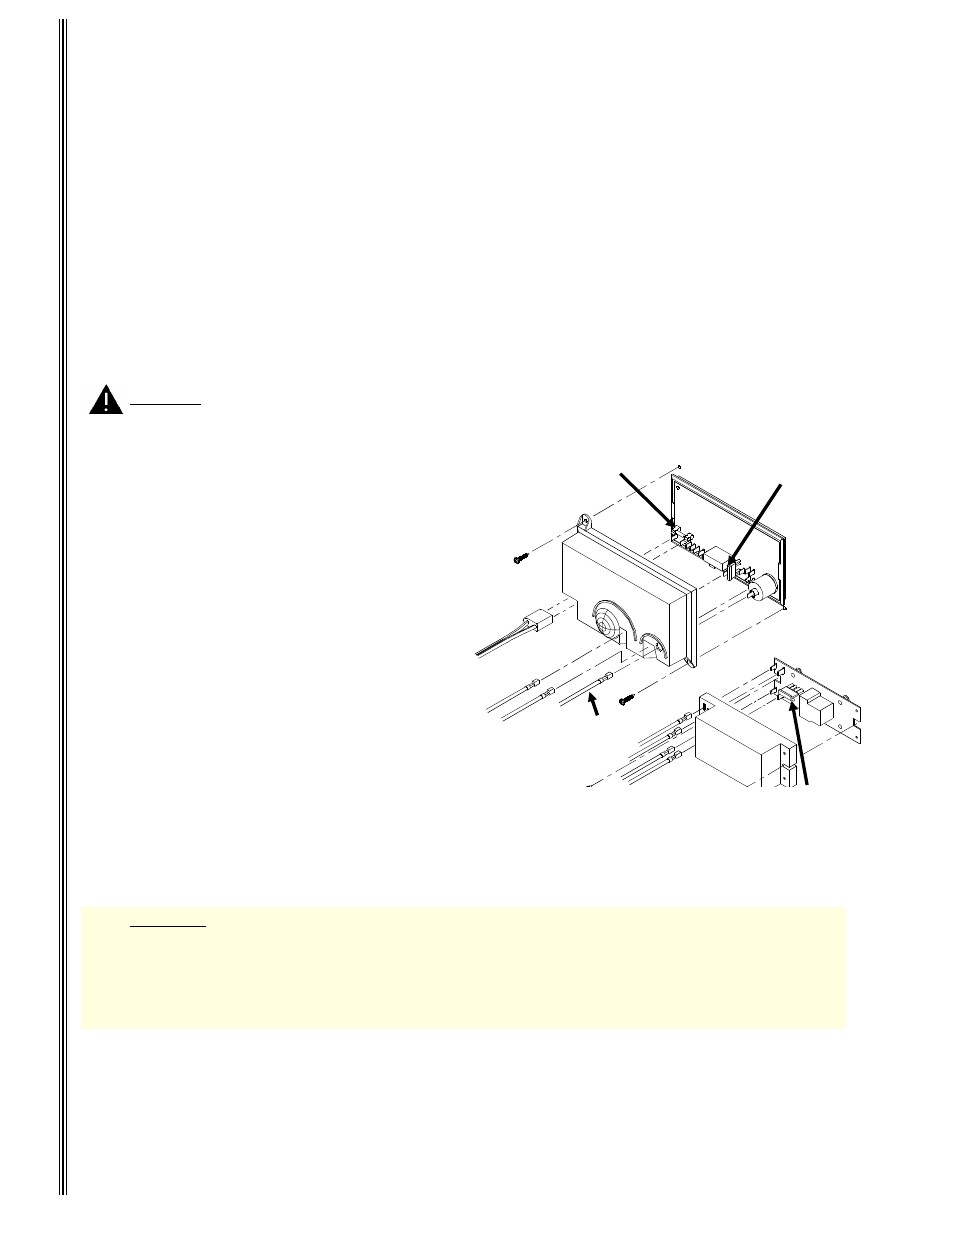 Fuse Replacement Procedure Maintenance Thetford Norcold 982 User Ac Dc Refrigerator Schematics Manual Page 14 16